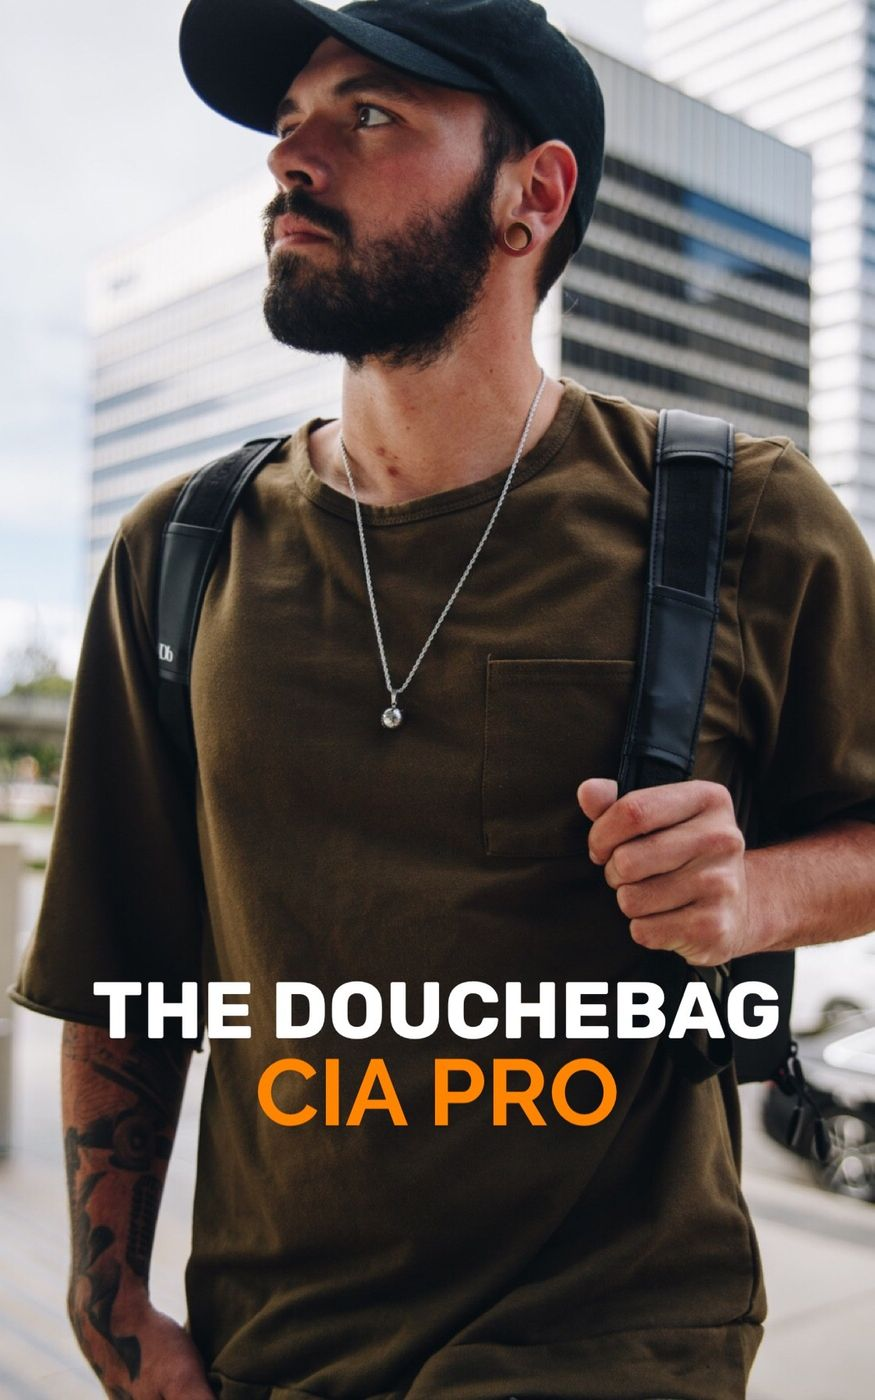 A closer look to my favorite bag. The CIA PRO Douchebag